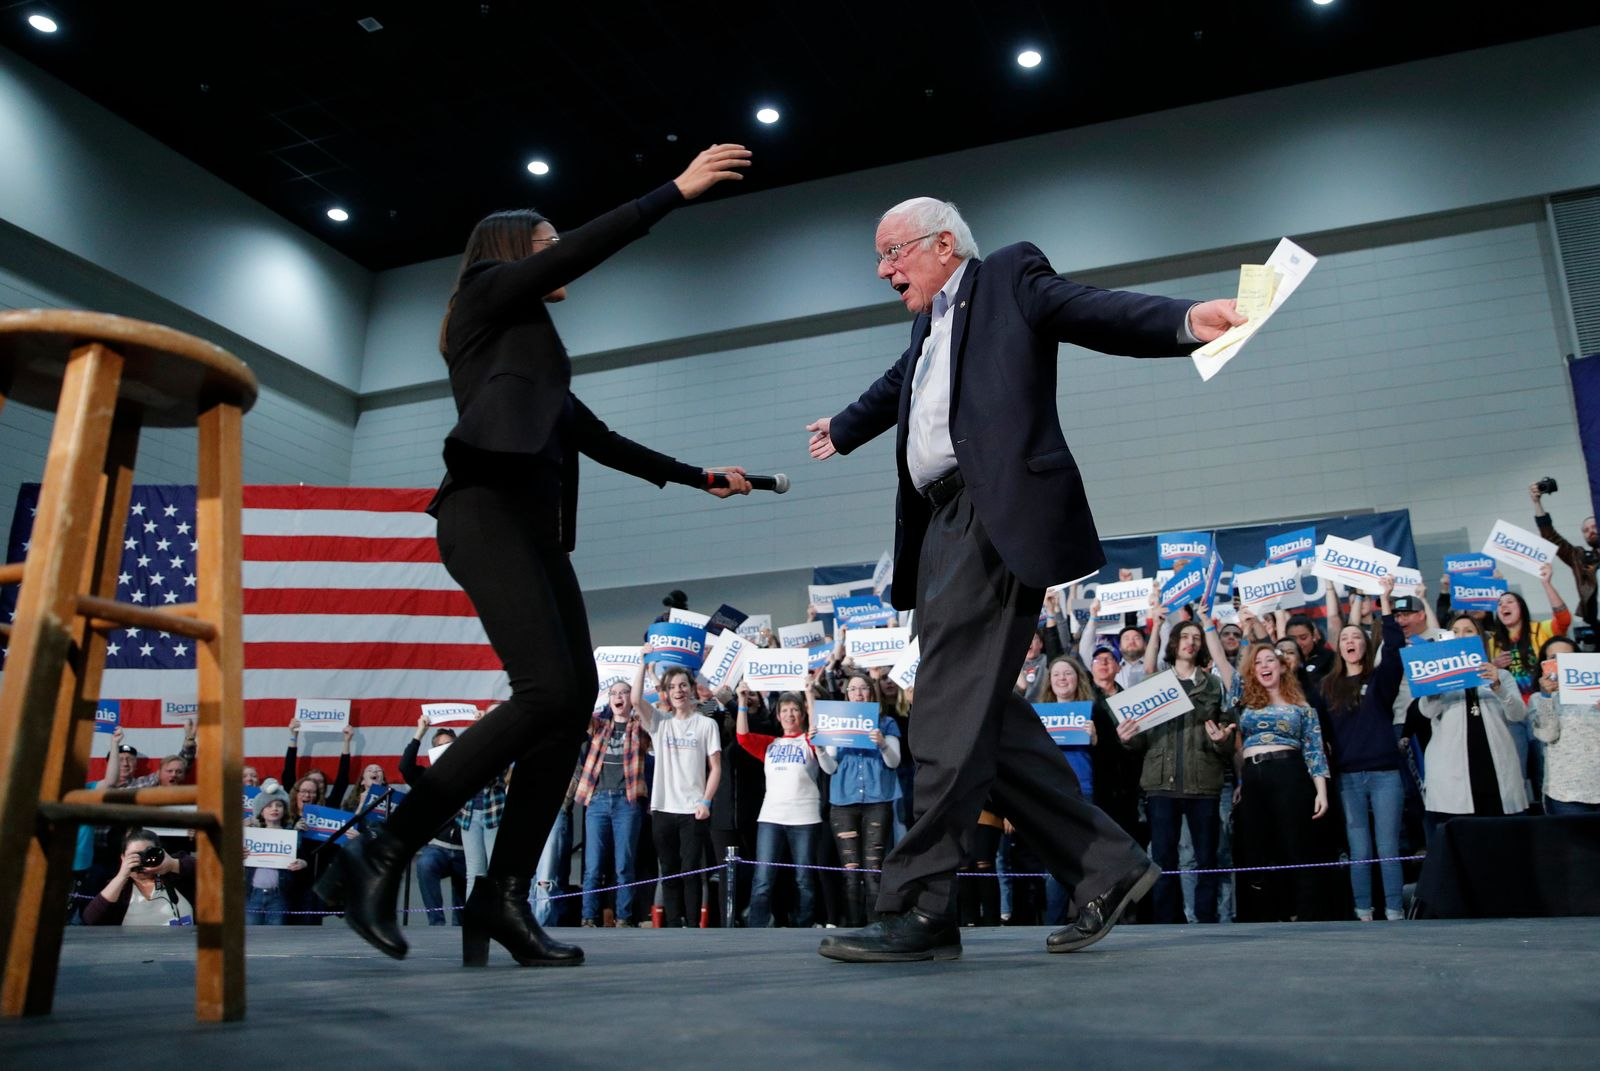 Democratic presidential candidate Sen. Bernie Sanders, I-Vt., right, embraces Rep. Alexandria Ocasio-Cortez, D-NY, at a campaign rally Sunday, Jan. 26, 2020, in Sioux City, Iowa. (AP Photo/John Locher)